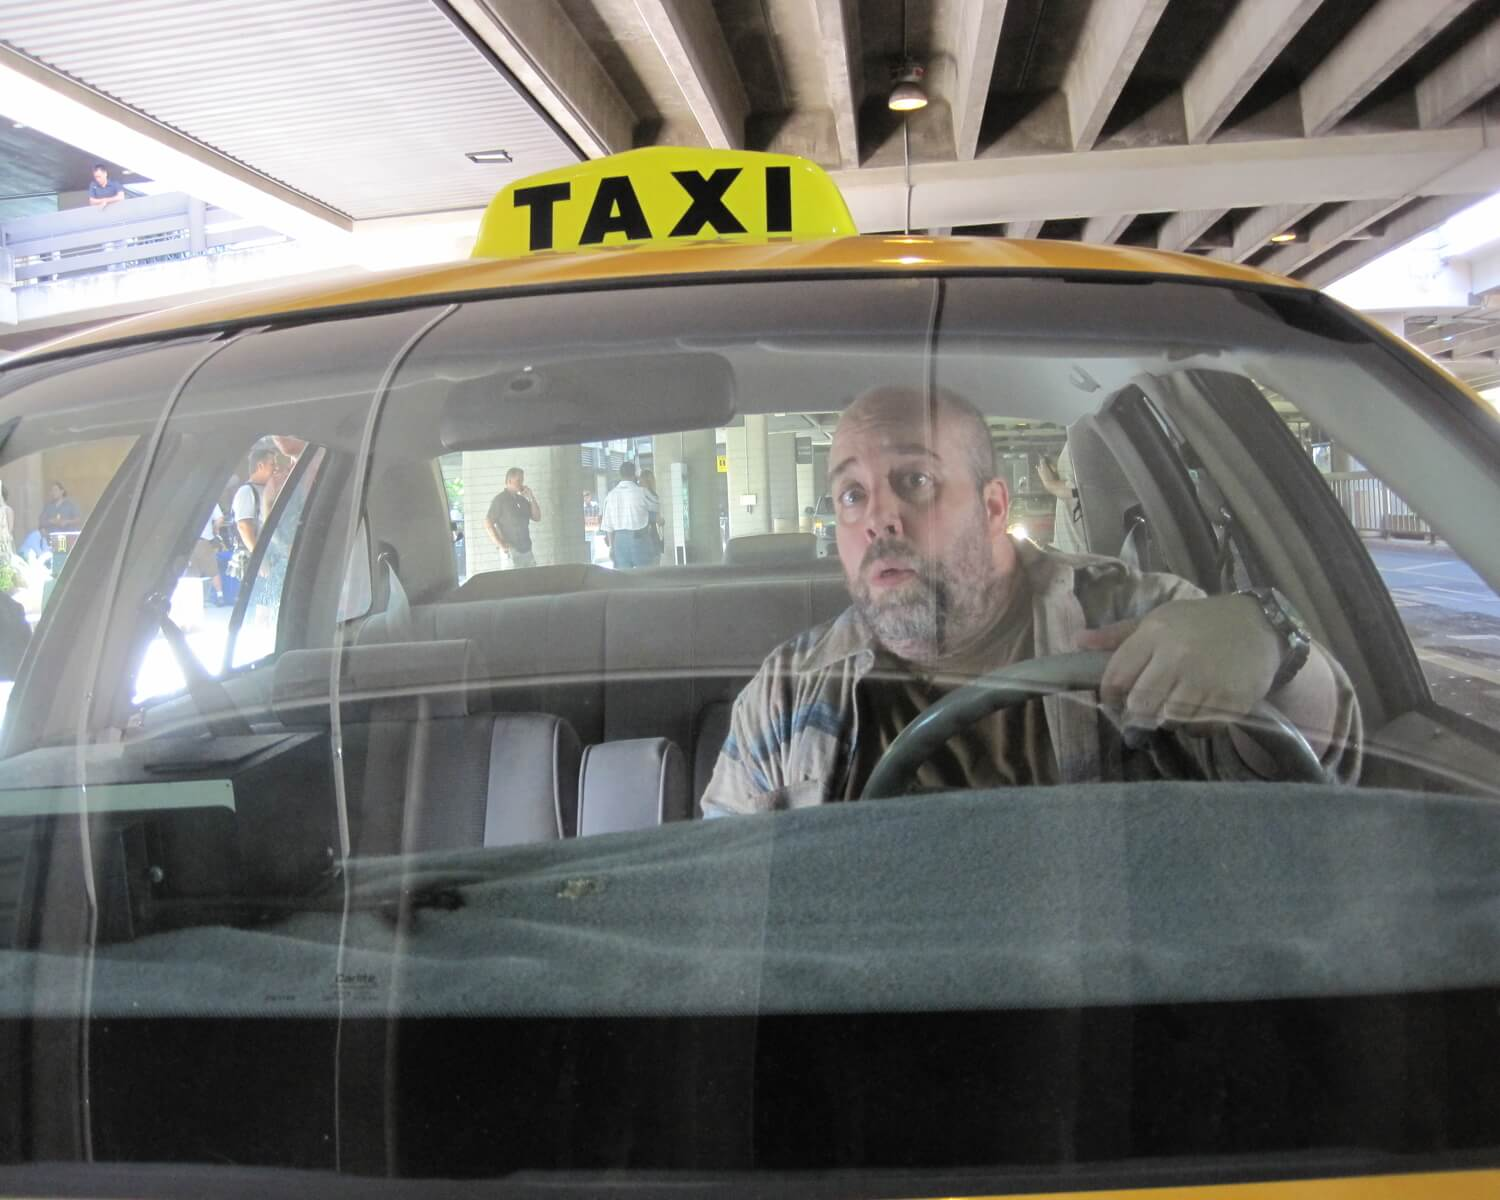 2015-dhlawrencexvii-23-lost-taxi